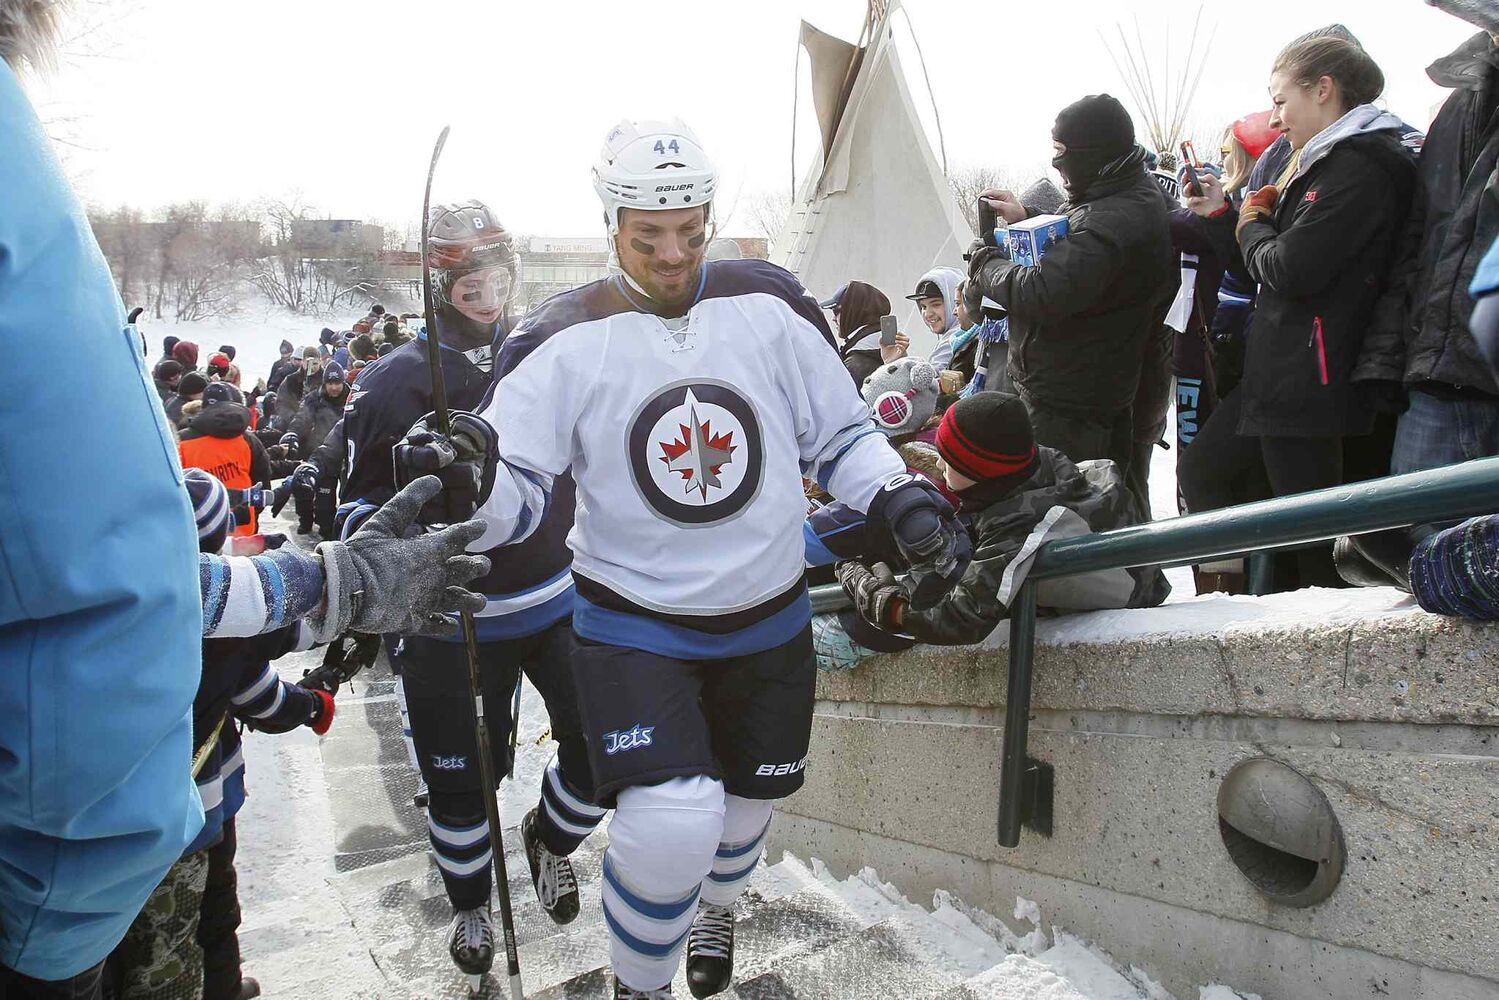 Jets defencemen Zach Bogosian (44) and Jacob Trouba (8) greet fans at The Forks on Sunday. (Winnipeg Free Press)